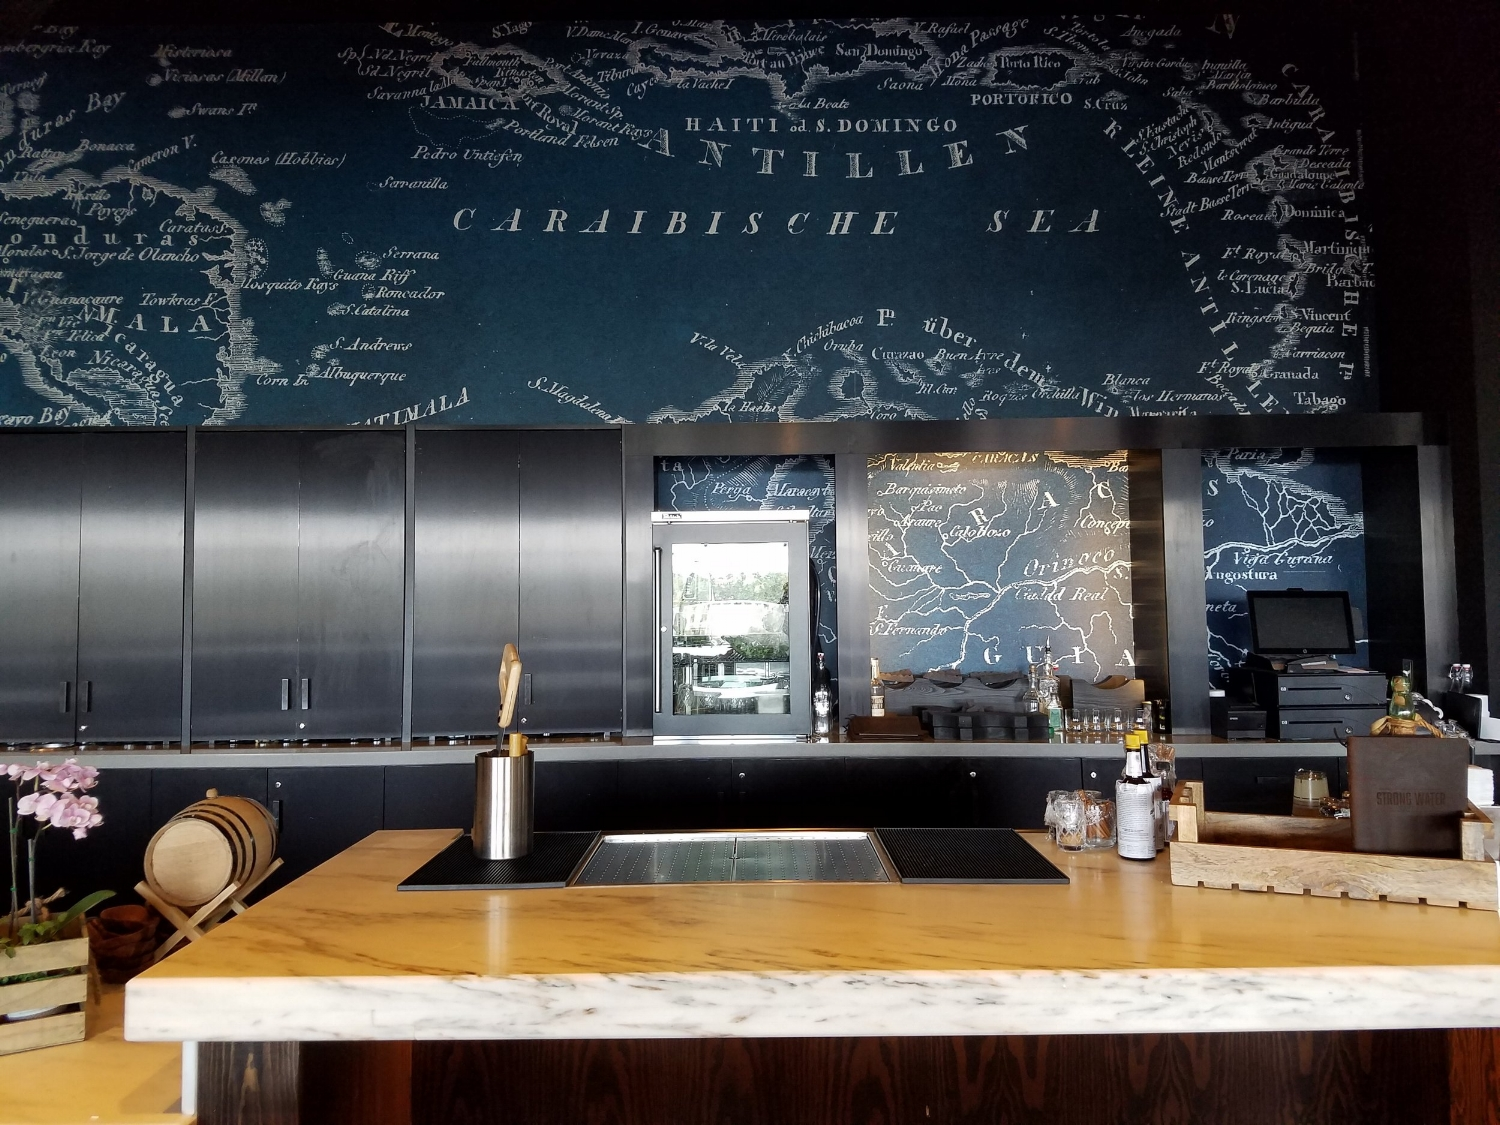 Caribbean Map Behind the Bar in Strong Water Tavern